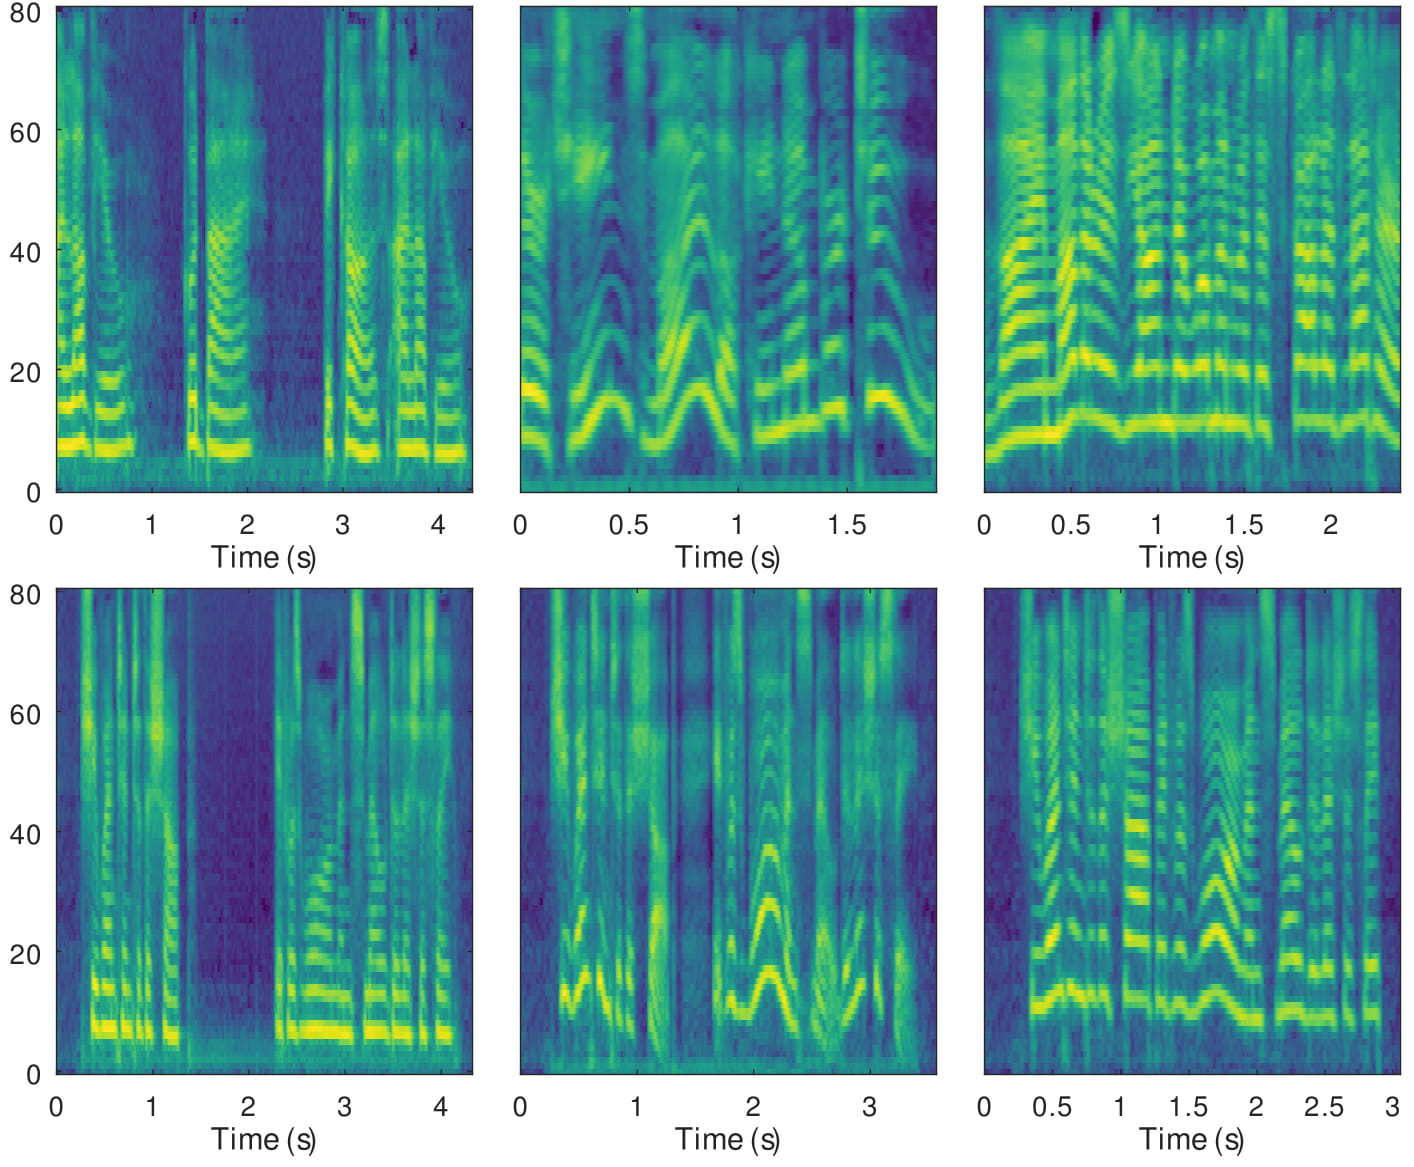 """The first row exhibits the mel spectrograms of three recordings with different styles, while the second row exhibits the synthesised audios referenced on those recordings separately. The synthesised audios have the same text """"She went into the shop . It was warm and smelled deliciously."""""""